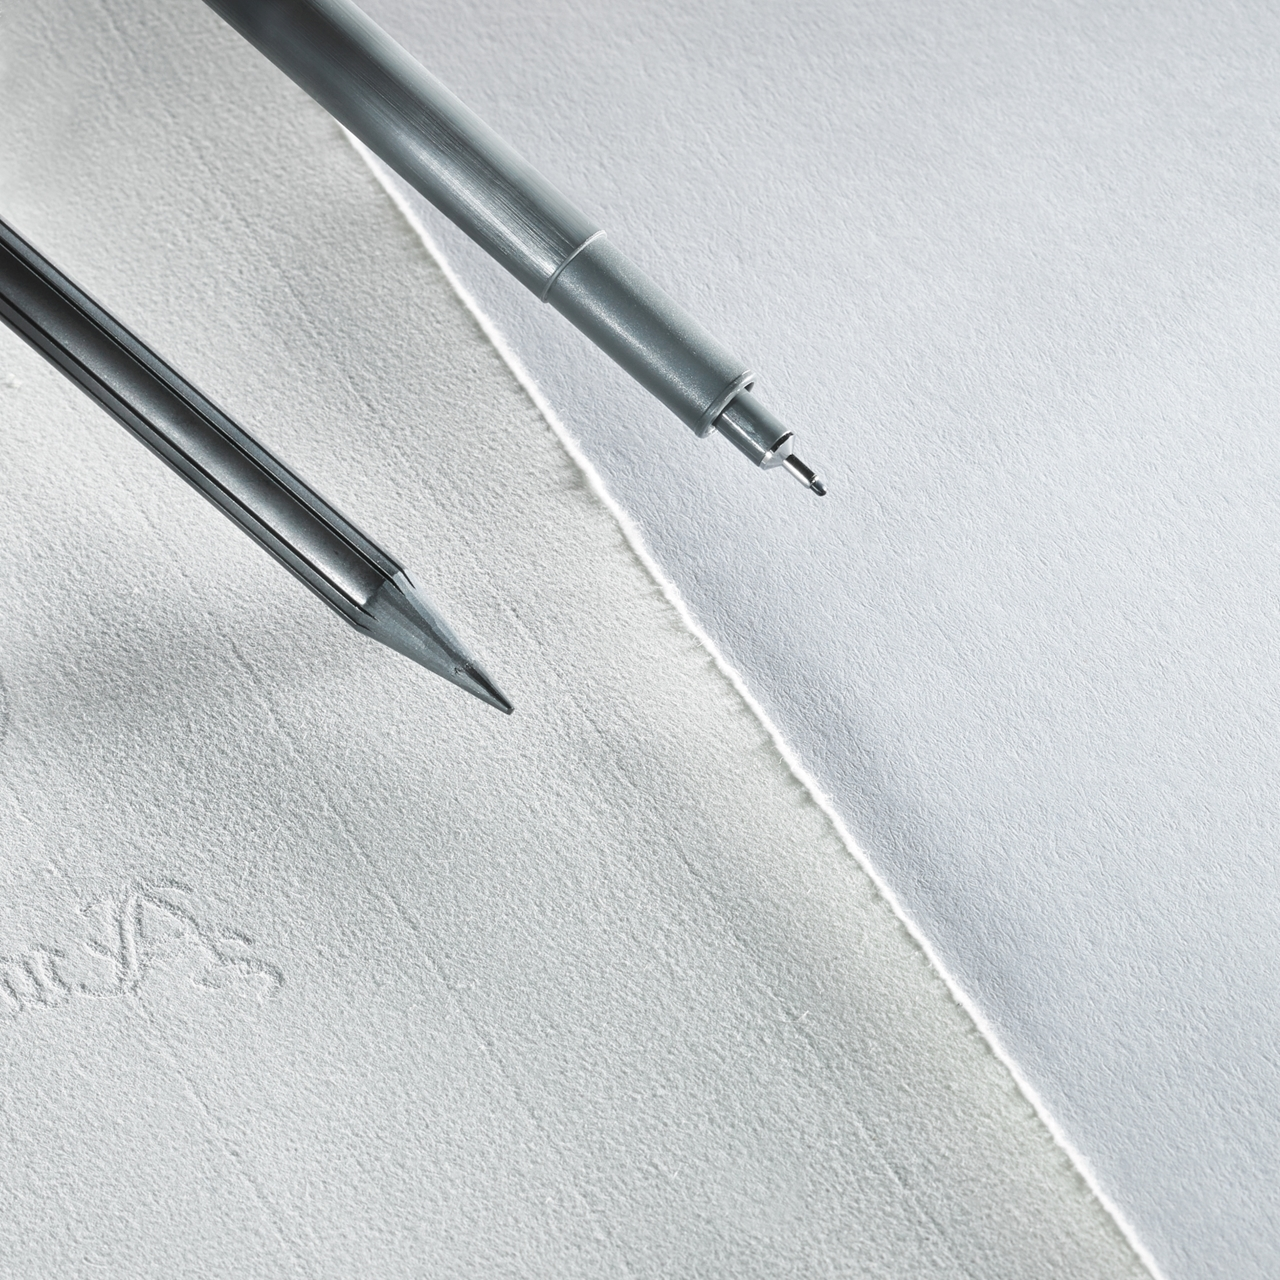 Hahnemuehle Signing Pen Duo close up